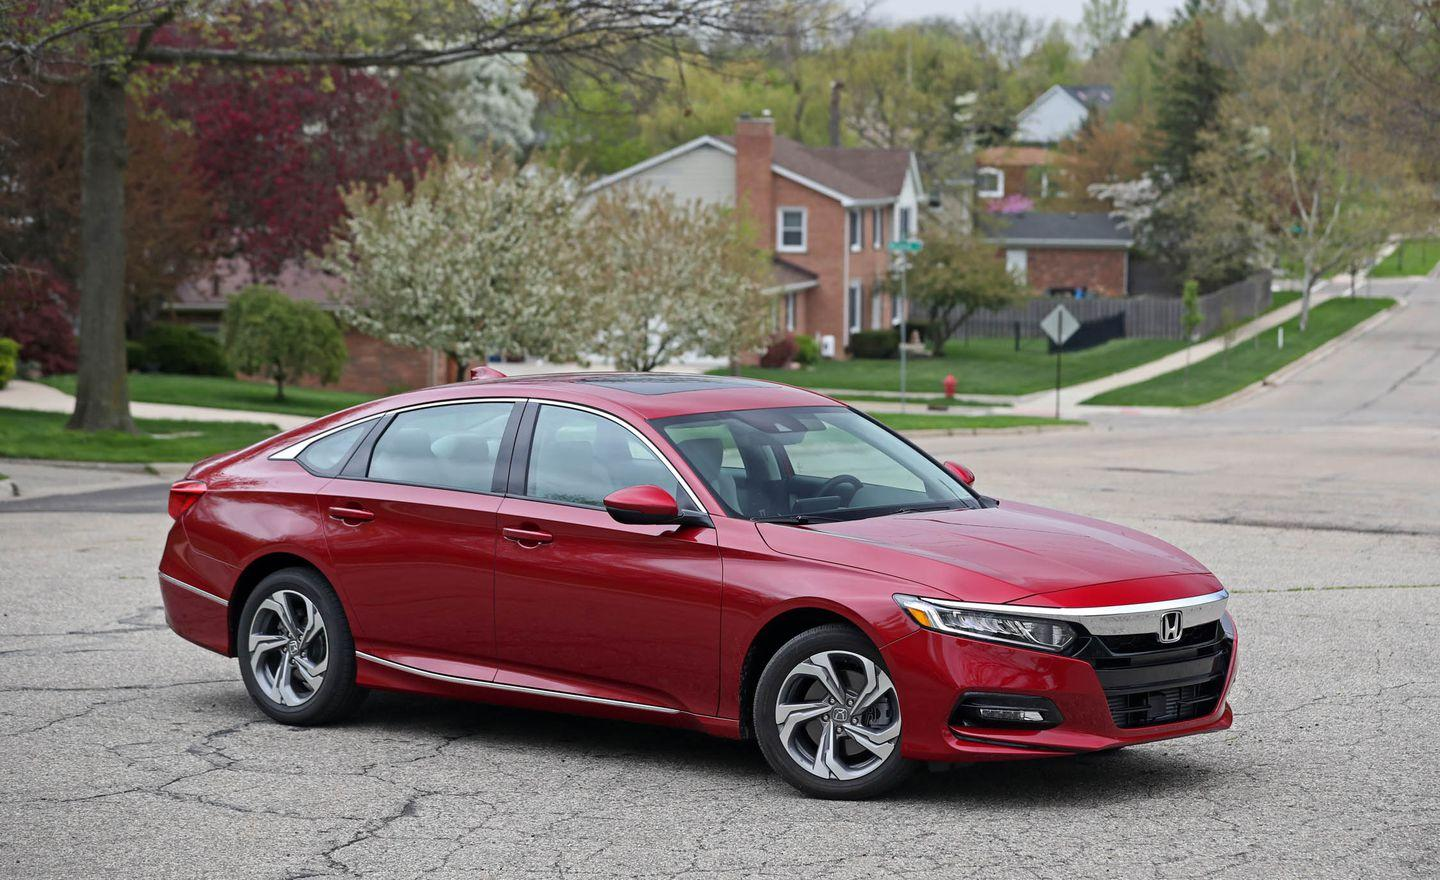 """<p>Why do we love the <a href=""""https://www.caranddriver.com/honda/accord"""" rel=""""nofollow noopener"""" target=""""_blank"""" data-ylk=""""slk:Accord"""" class=""""link rapid-noclick-resp"""">Accord</a>? Let us count the ways. This 33-time 10Best winner shows great attention to the details and does everything well. It's roomy, efficient, lively, and fun to drive while at the same time being quite refined. It's solidly built. Its interior is handsomely designed. The base 192-hp turbocharged inline-four-cylinder engine is peppy, and we love that you can get the Accord with a manual transmission. Honda's suite of active safety gear is standard. The Accord is priced right, too. In fact, our preferred model, the Accord Sport, adds visual spice and fatter, lower-profile tires and still comes in at a very reasonable $27,100. </p>"""